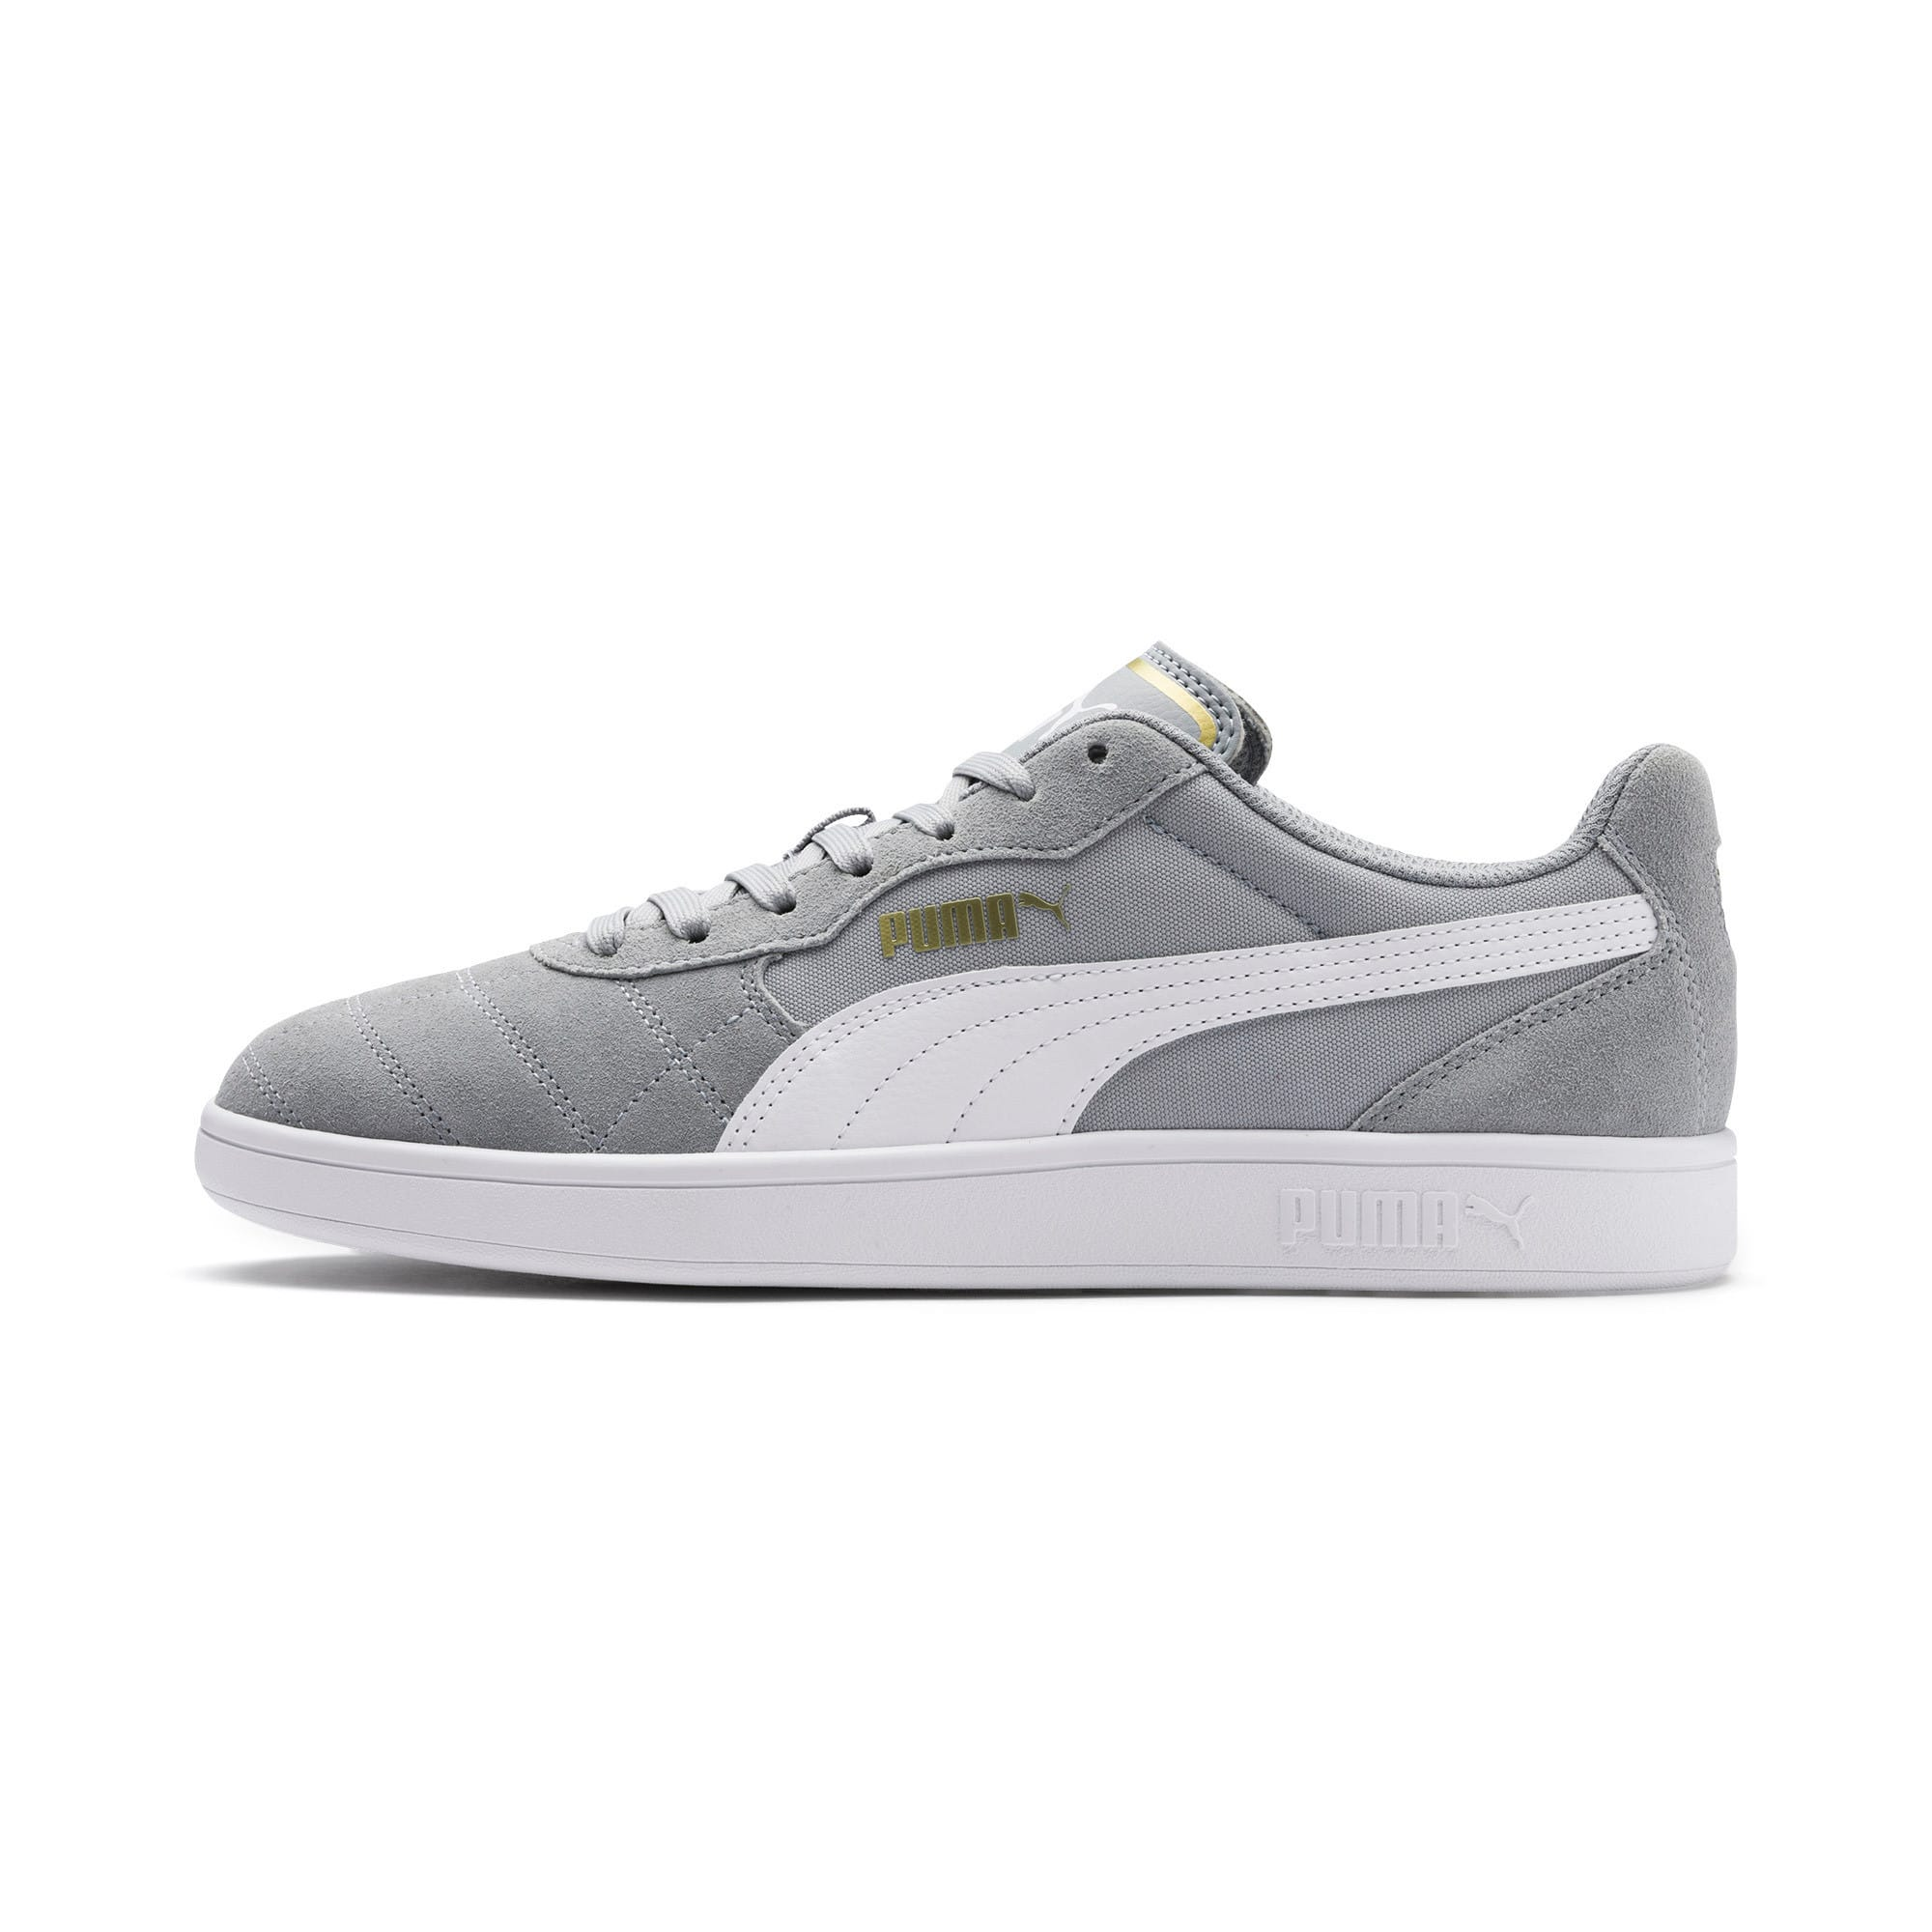 Thumbnail 1 of Astro Kick Sneakers, High Rise-Puma White-Gold, medium